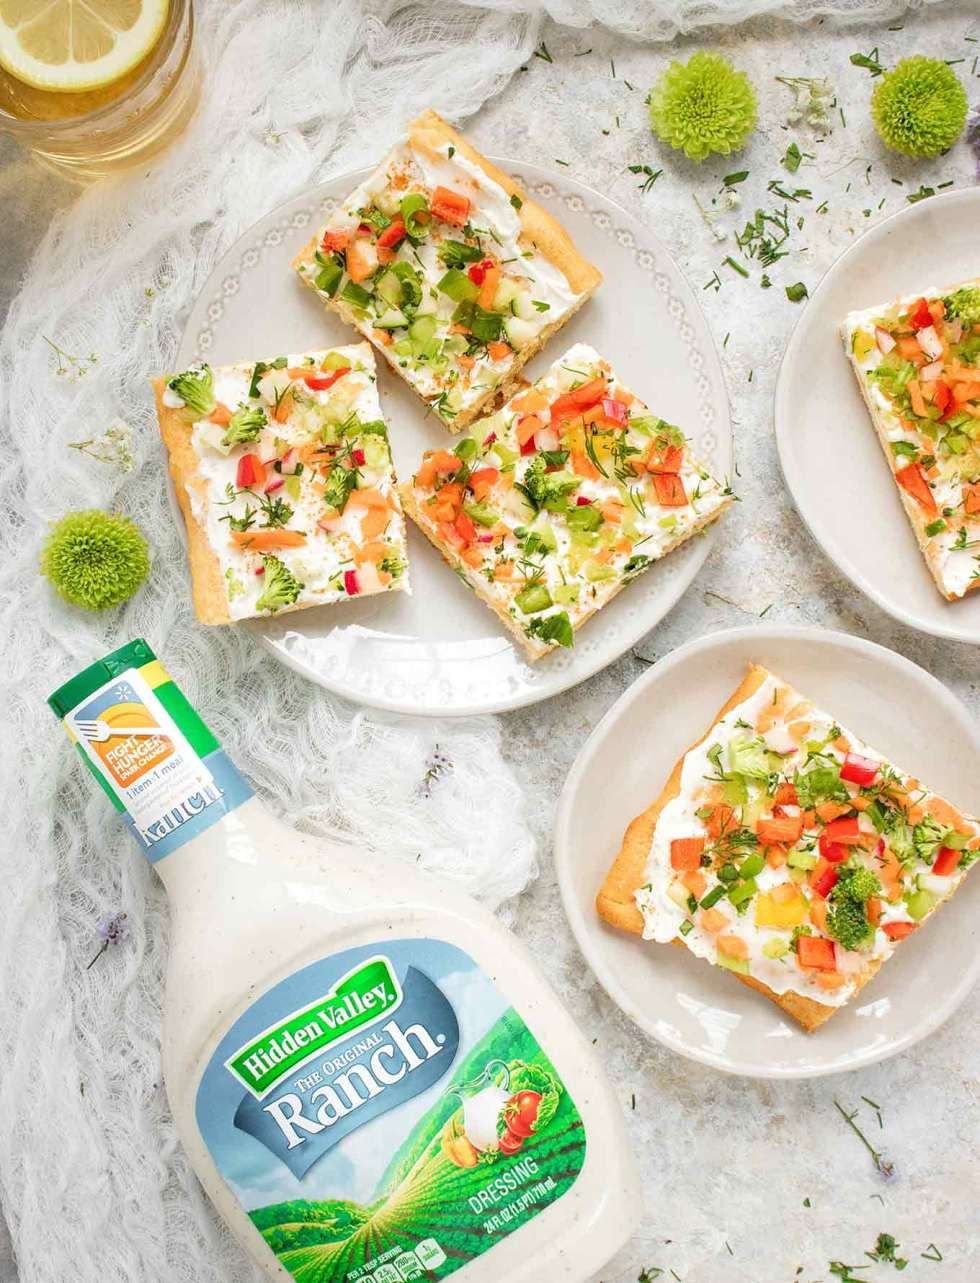 Ranch Veggie Pizza Appetizer served on plates, next to a bottle of Hidden Valley Ranch Dressing